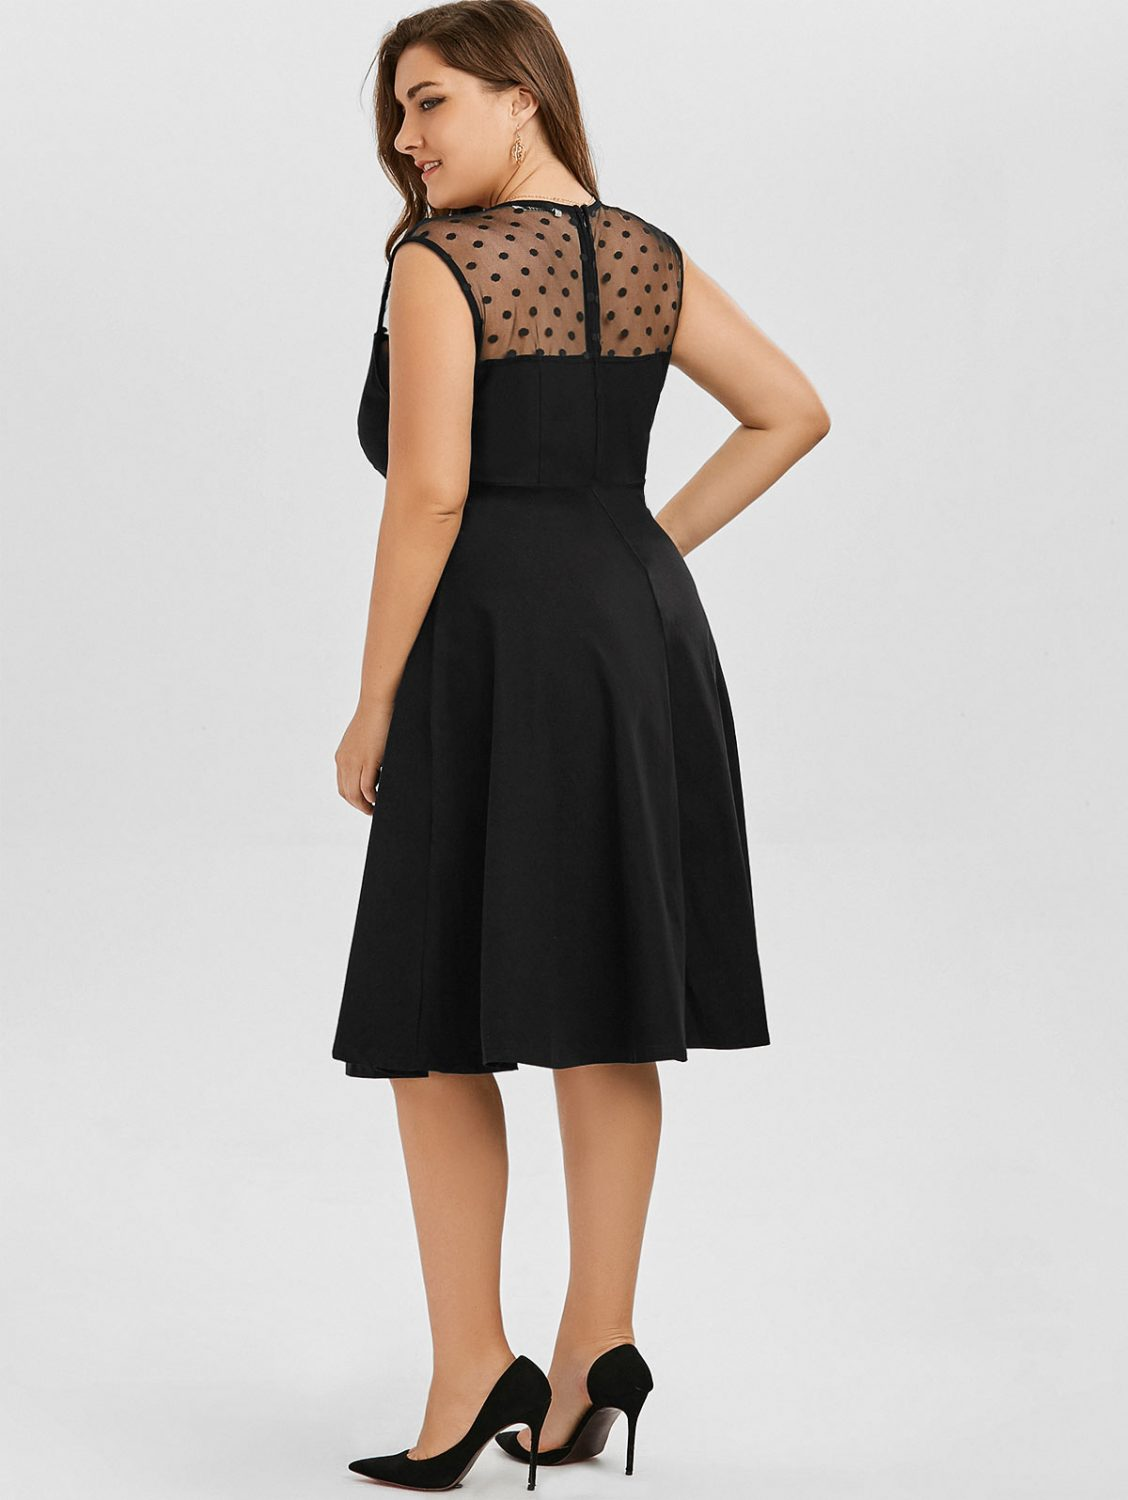 katie-plus-size-black-retro-dress